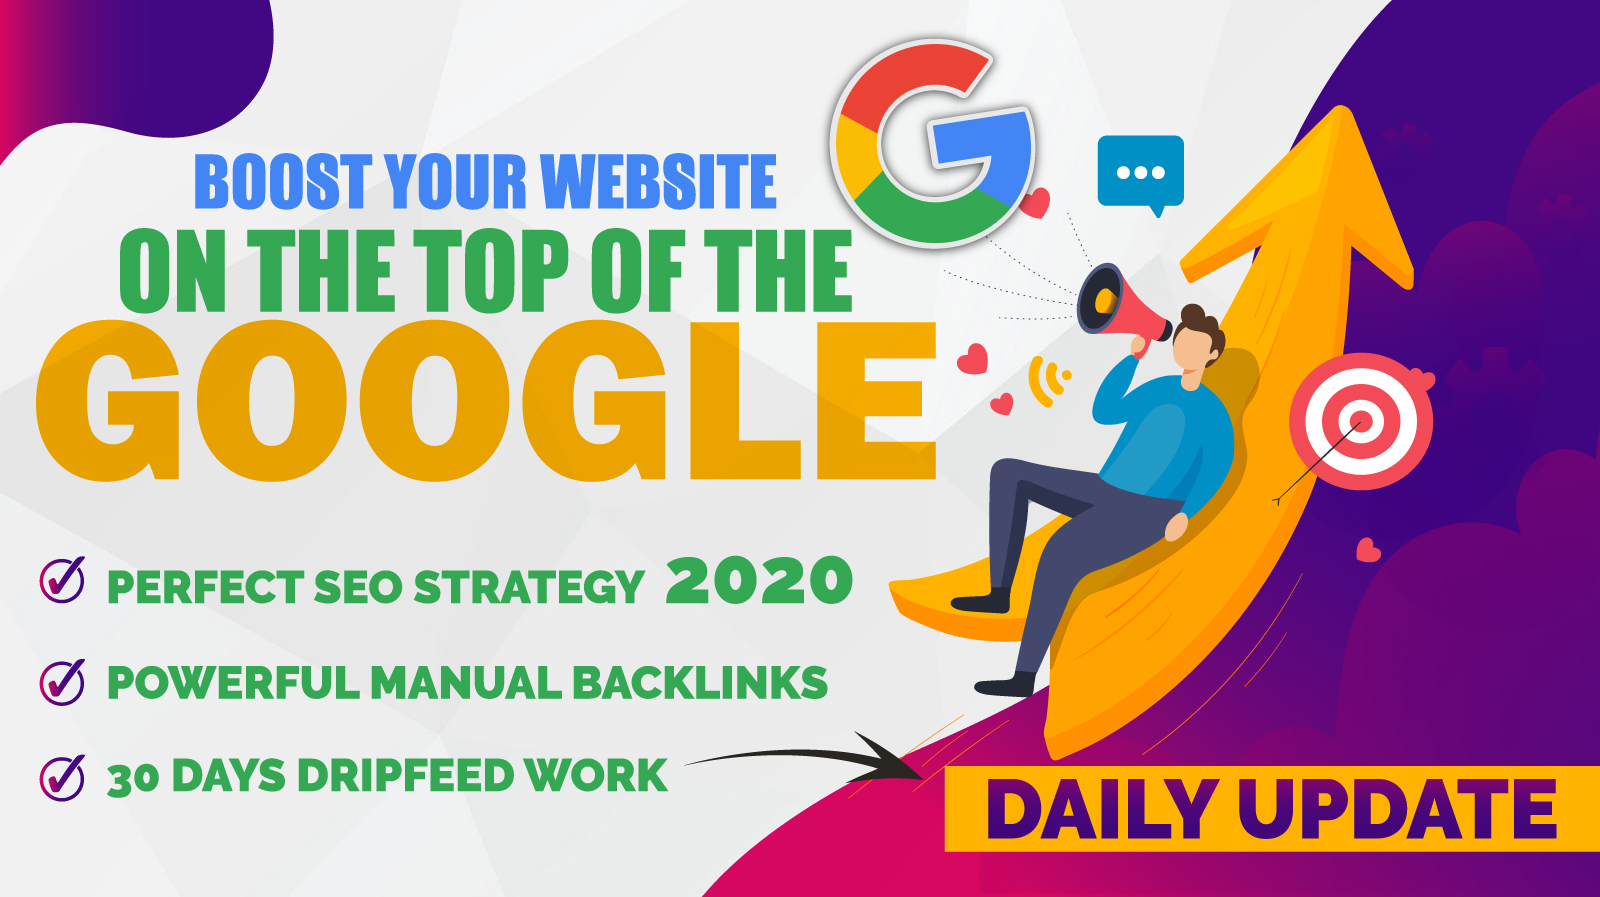 Boost your website on the 1 of google with out 30 days drip feed packages